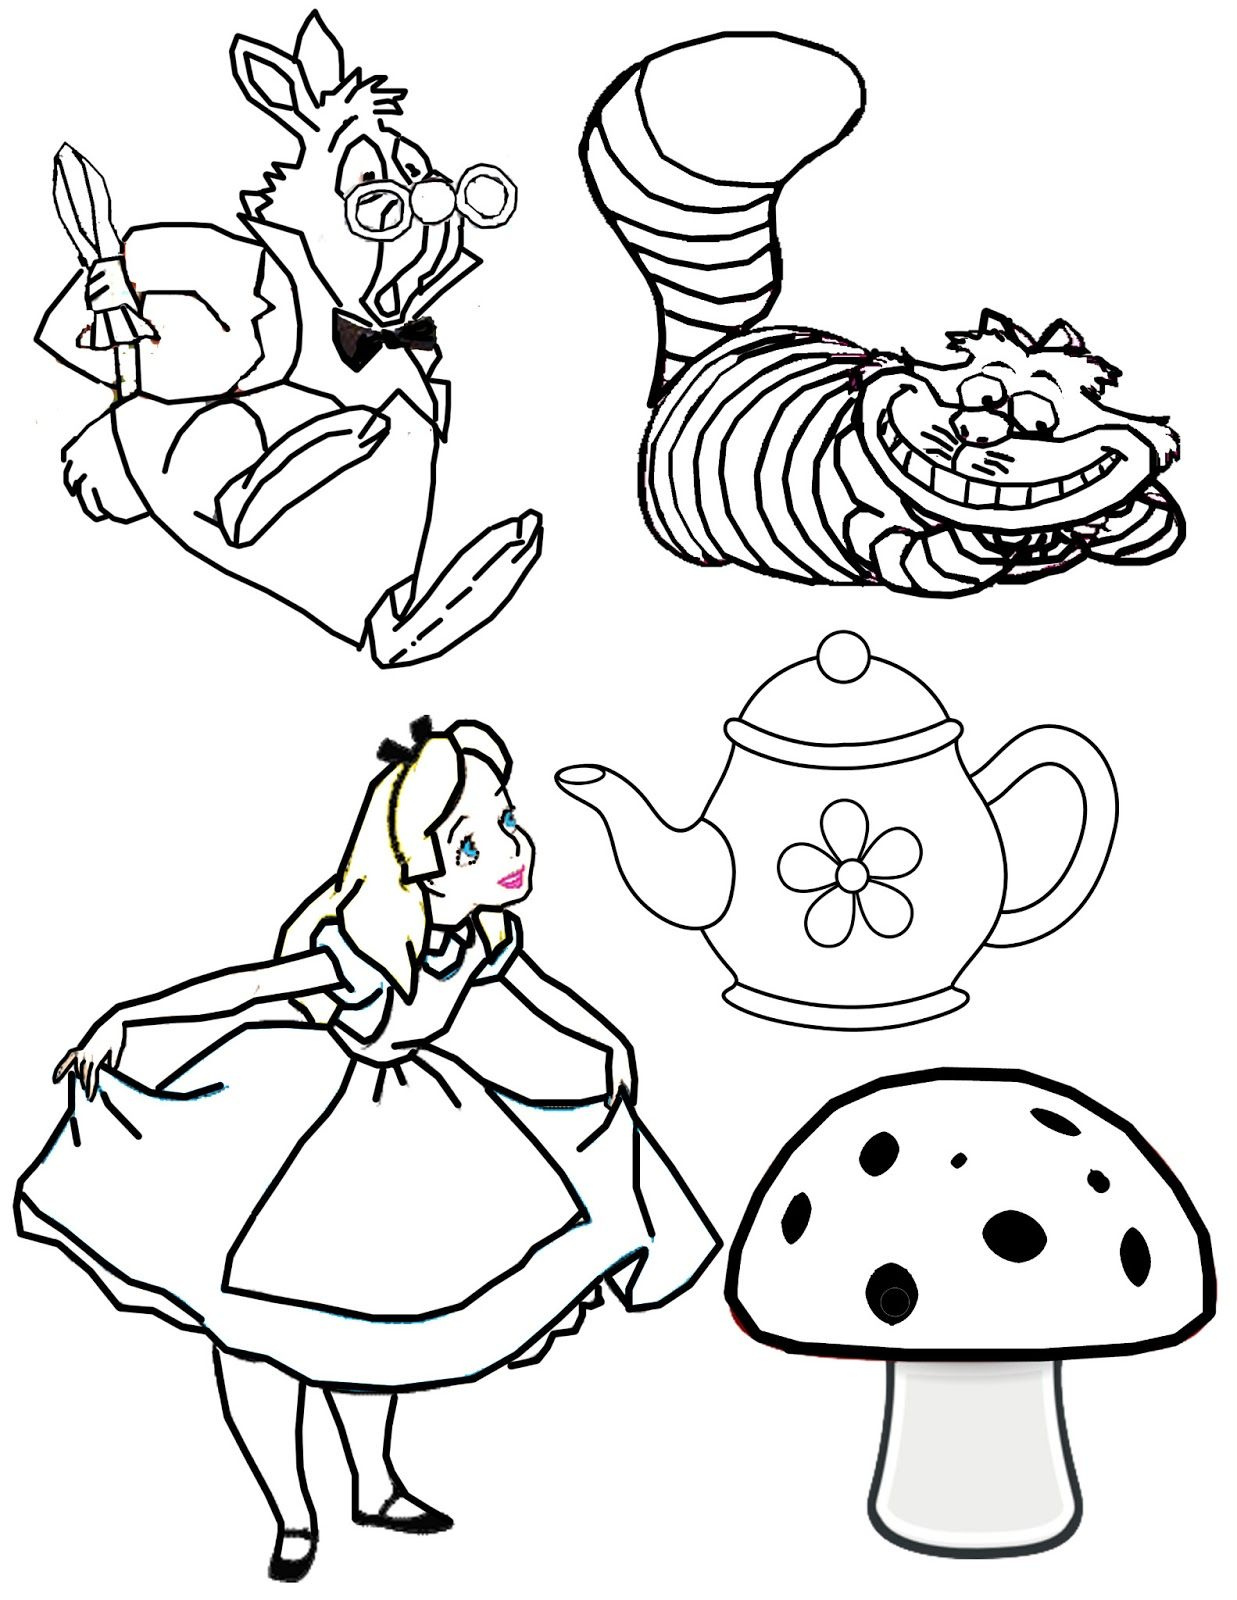 Outside The Box Mad Hatter S Tea Party On The 125 Day Of School Mad Hatter Cartoon Mad Hatter Day Alice In Wonderland